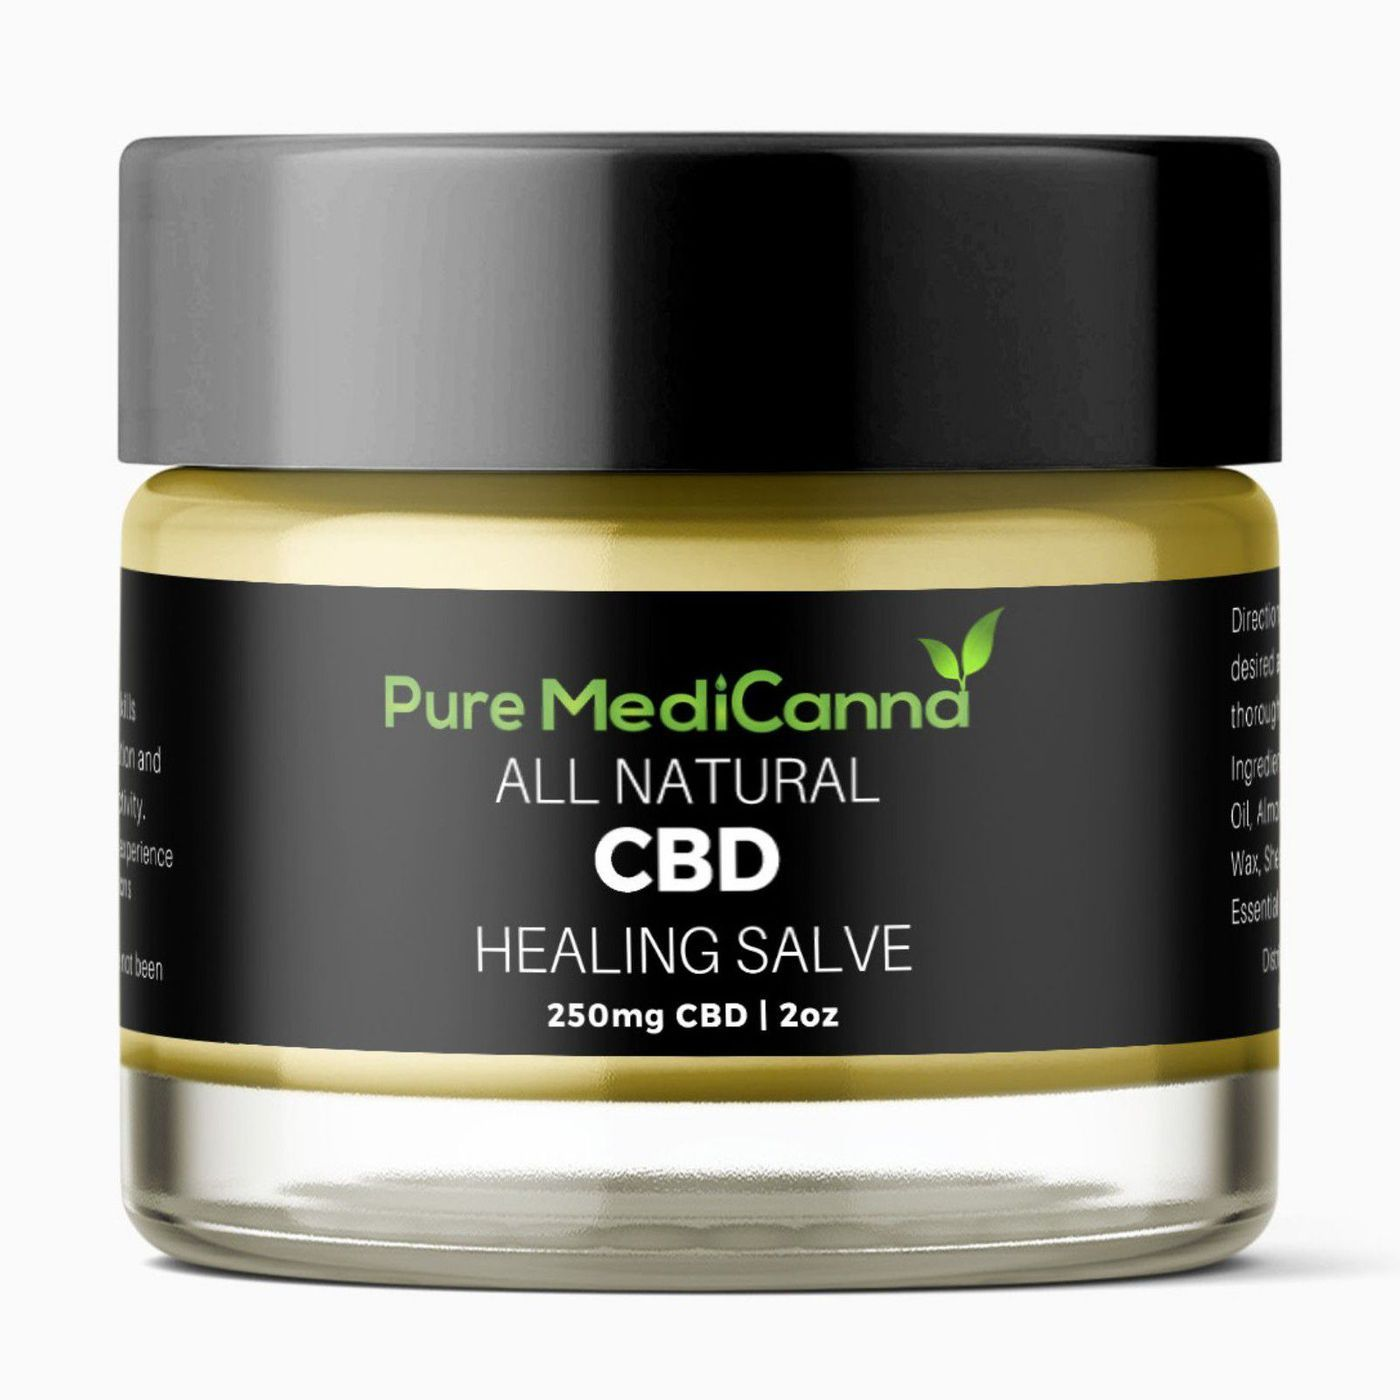 2oz CBD Topical Healing Salve 250mg | MMJ Cream Packaging